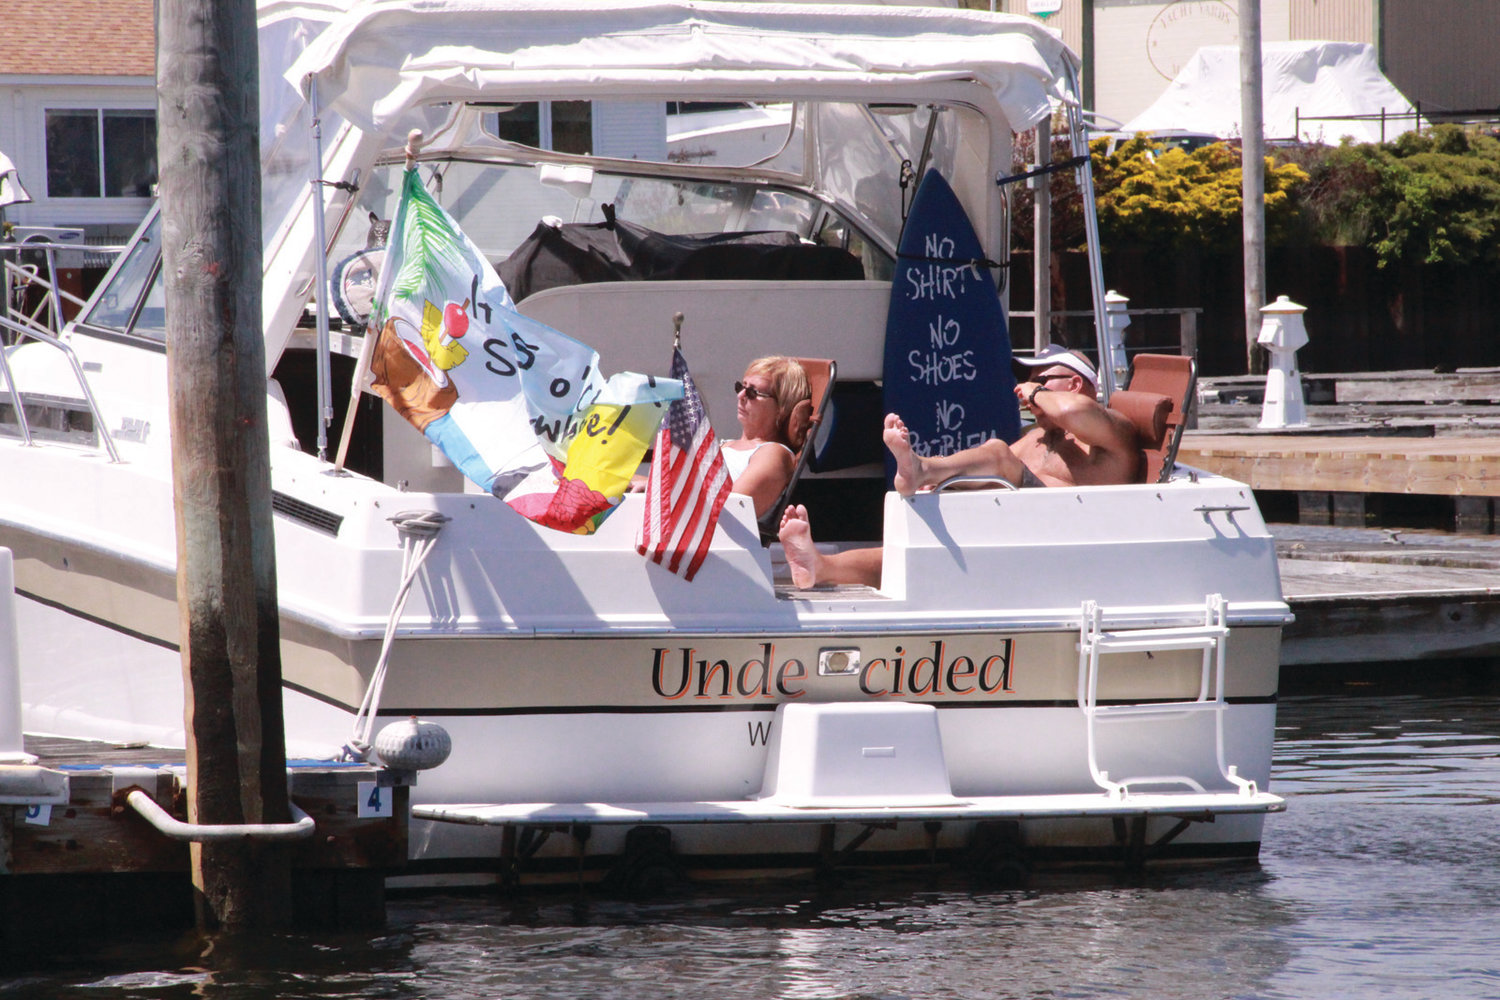 UNDECIDED WHAT TO DO THIS SUMMER? This couple found a great way to enjoy the outdoors, and there's no need to worry about masks from this boat in Warwick Cove.